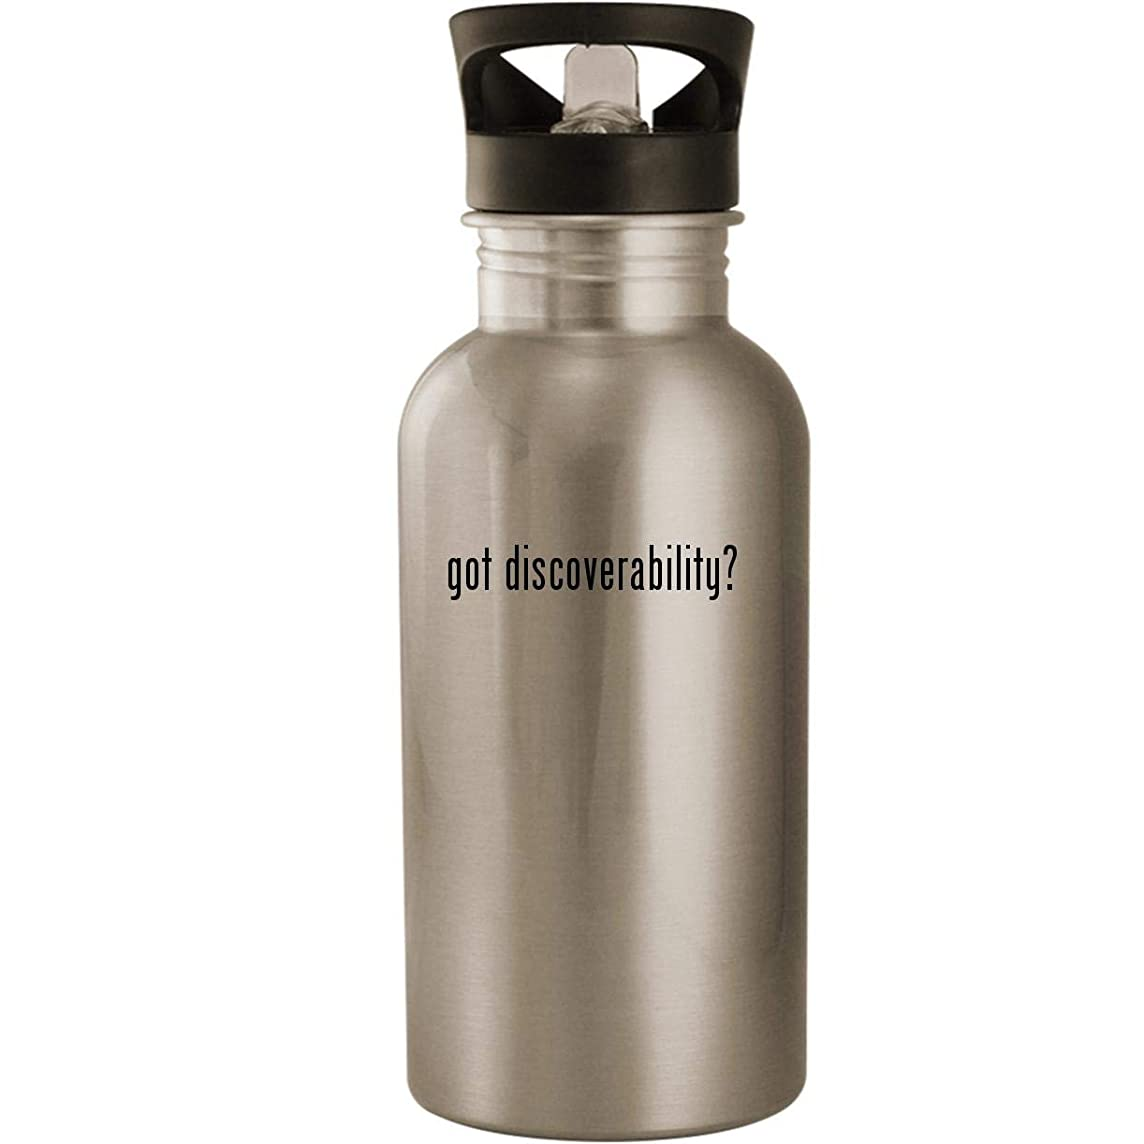 got discoverability? - Stainless Steel 20oz Road Ready Water Bottle, Silver